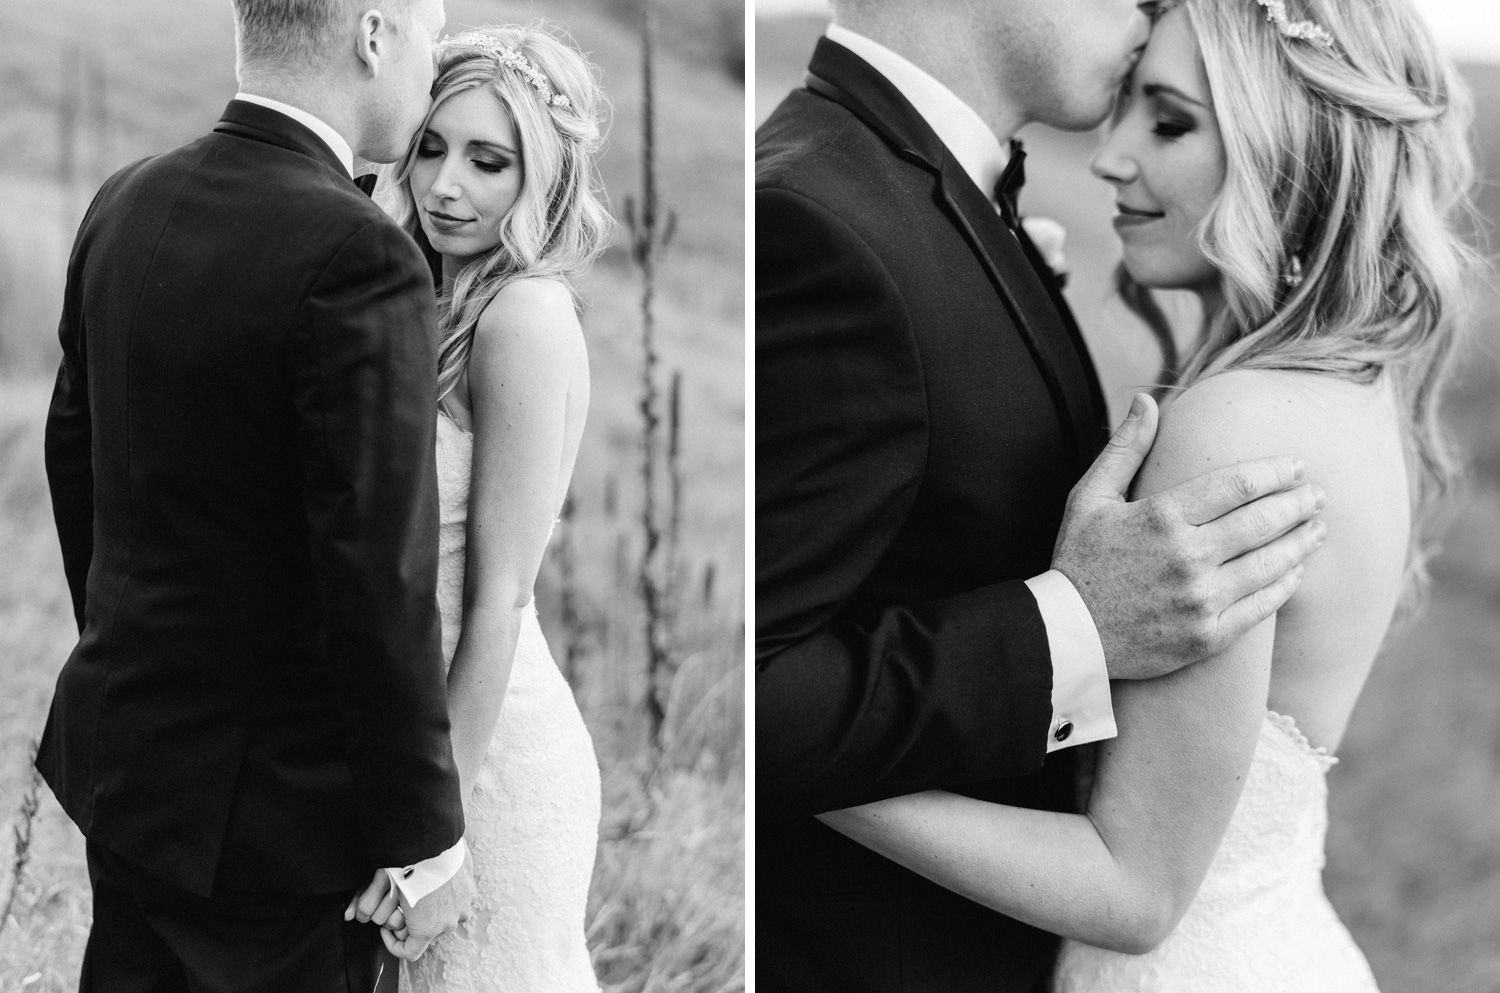 intimate black and white portrait of bride and groom by geneoh photography